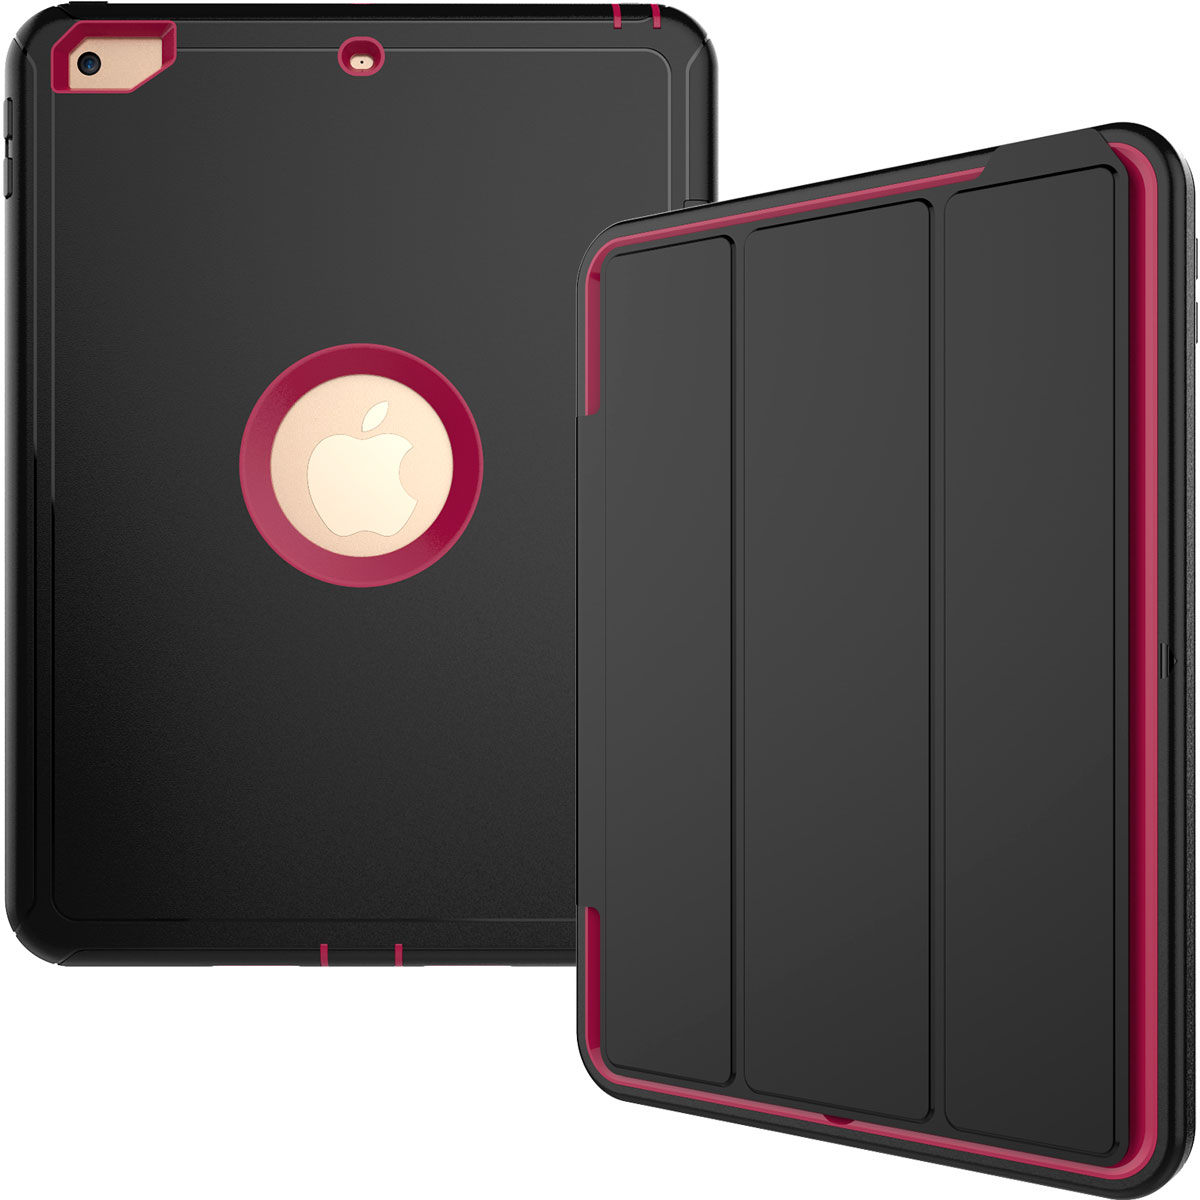 Screen Protector Heavy Rugged Smart Case For Ipad